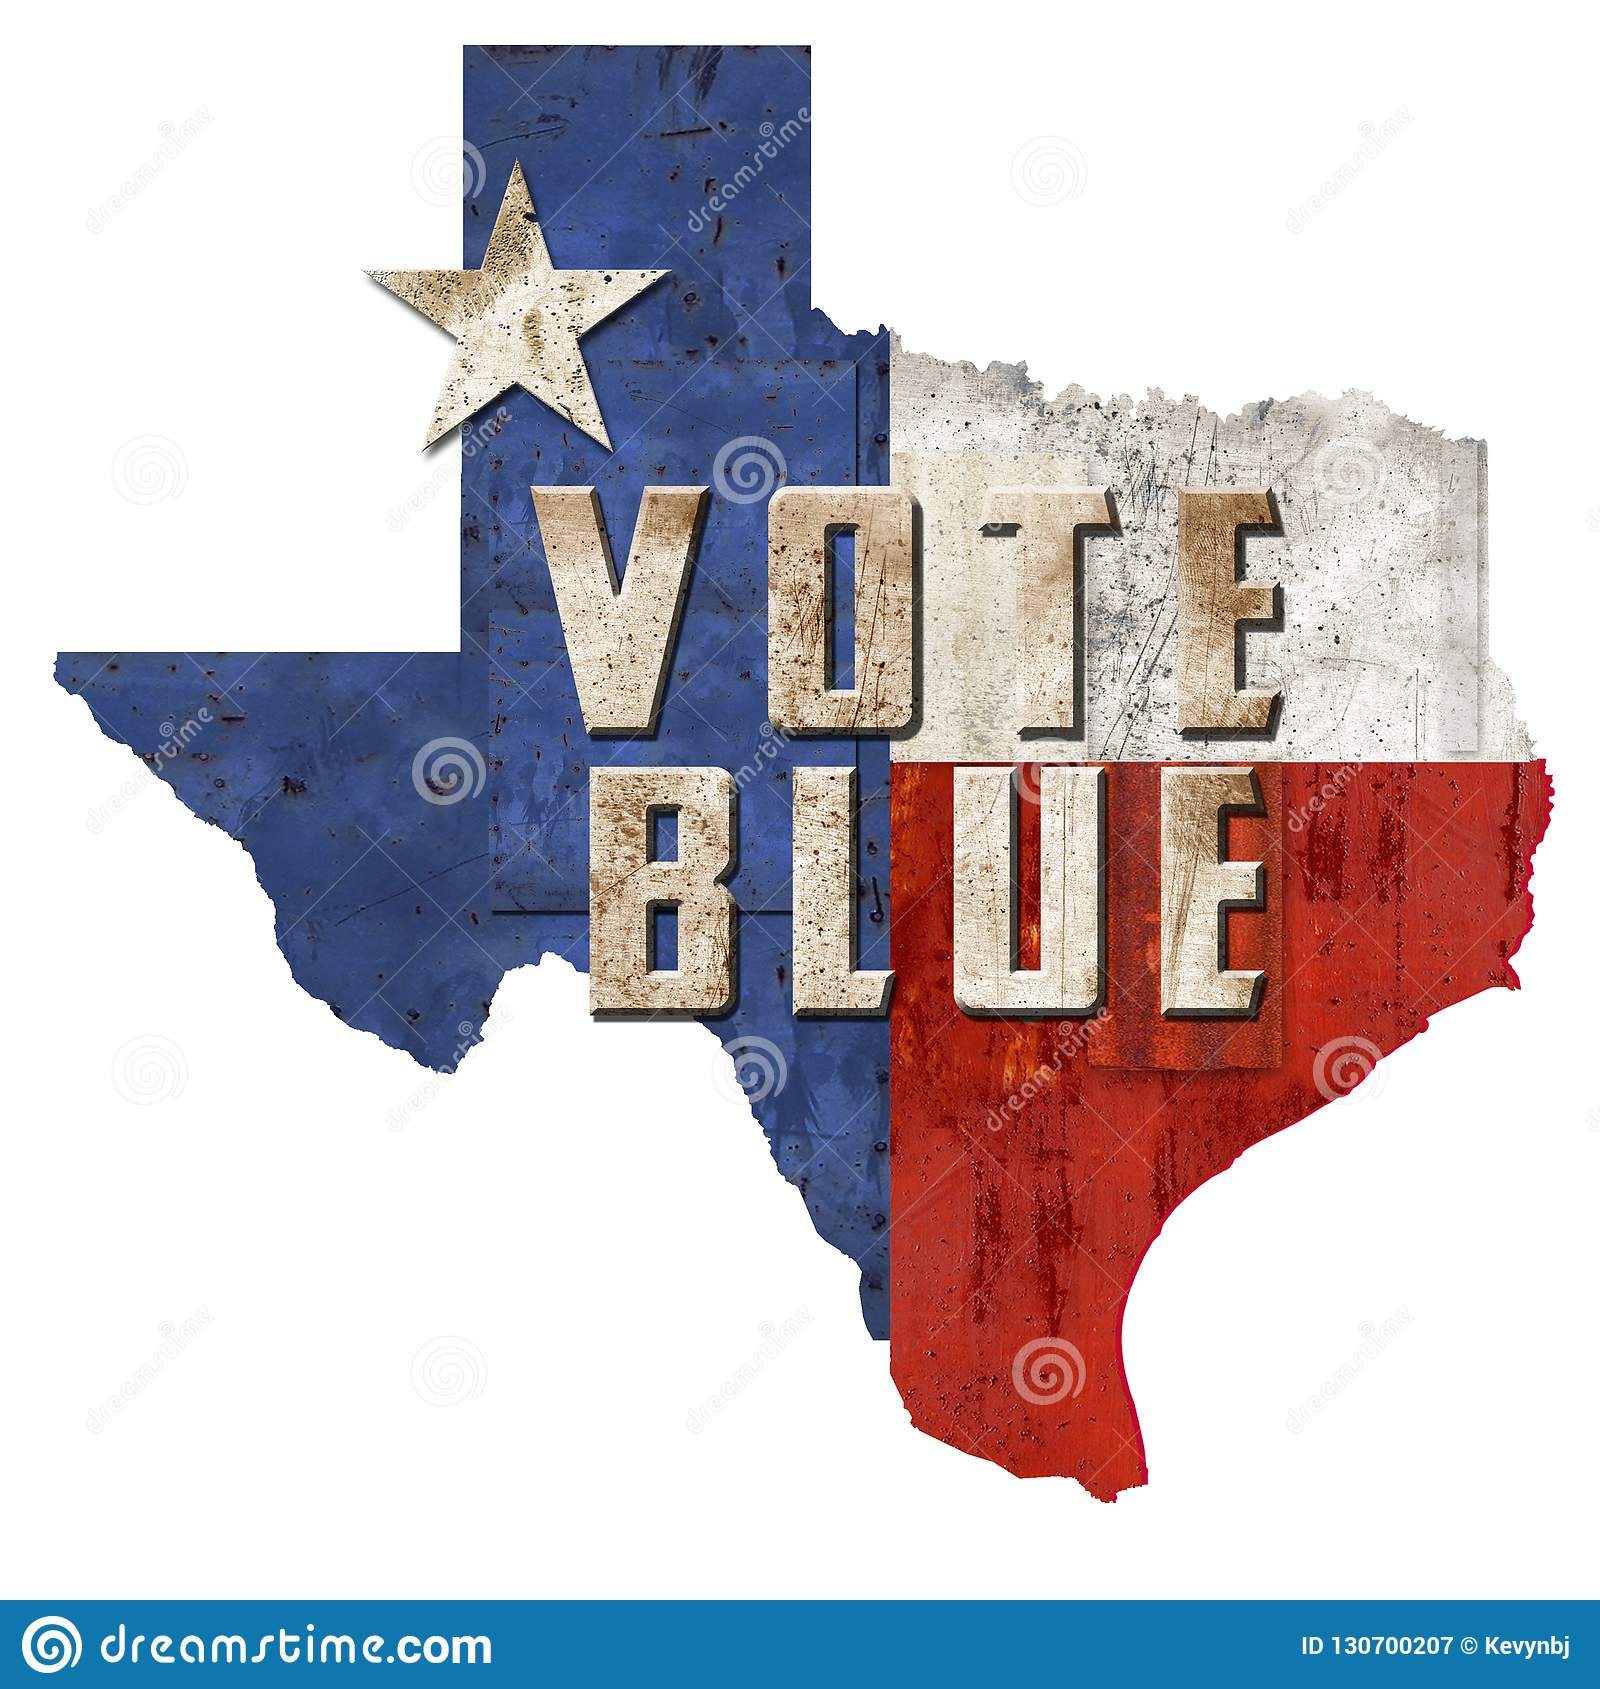 Voto Texas Democrat Vote Blue TX